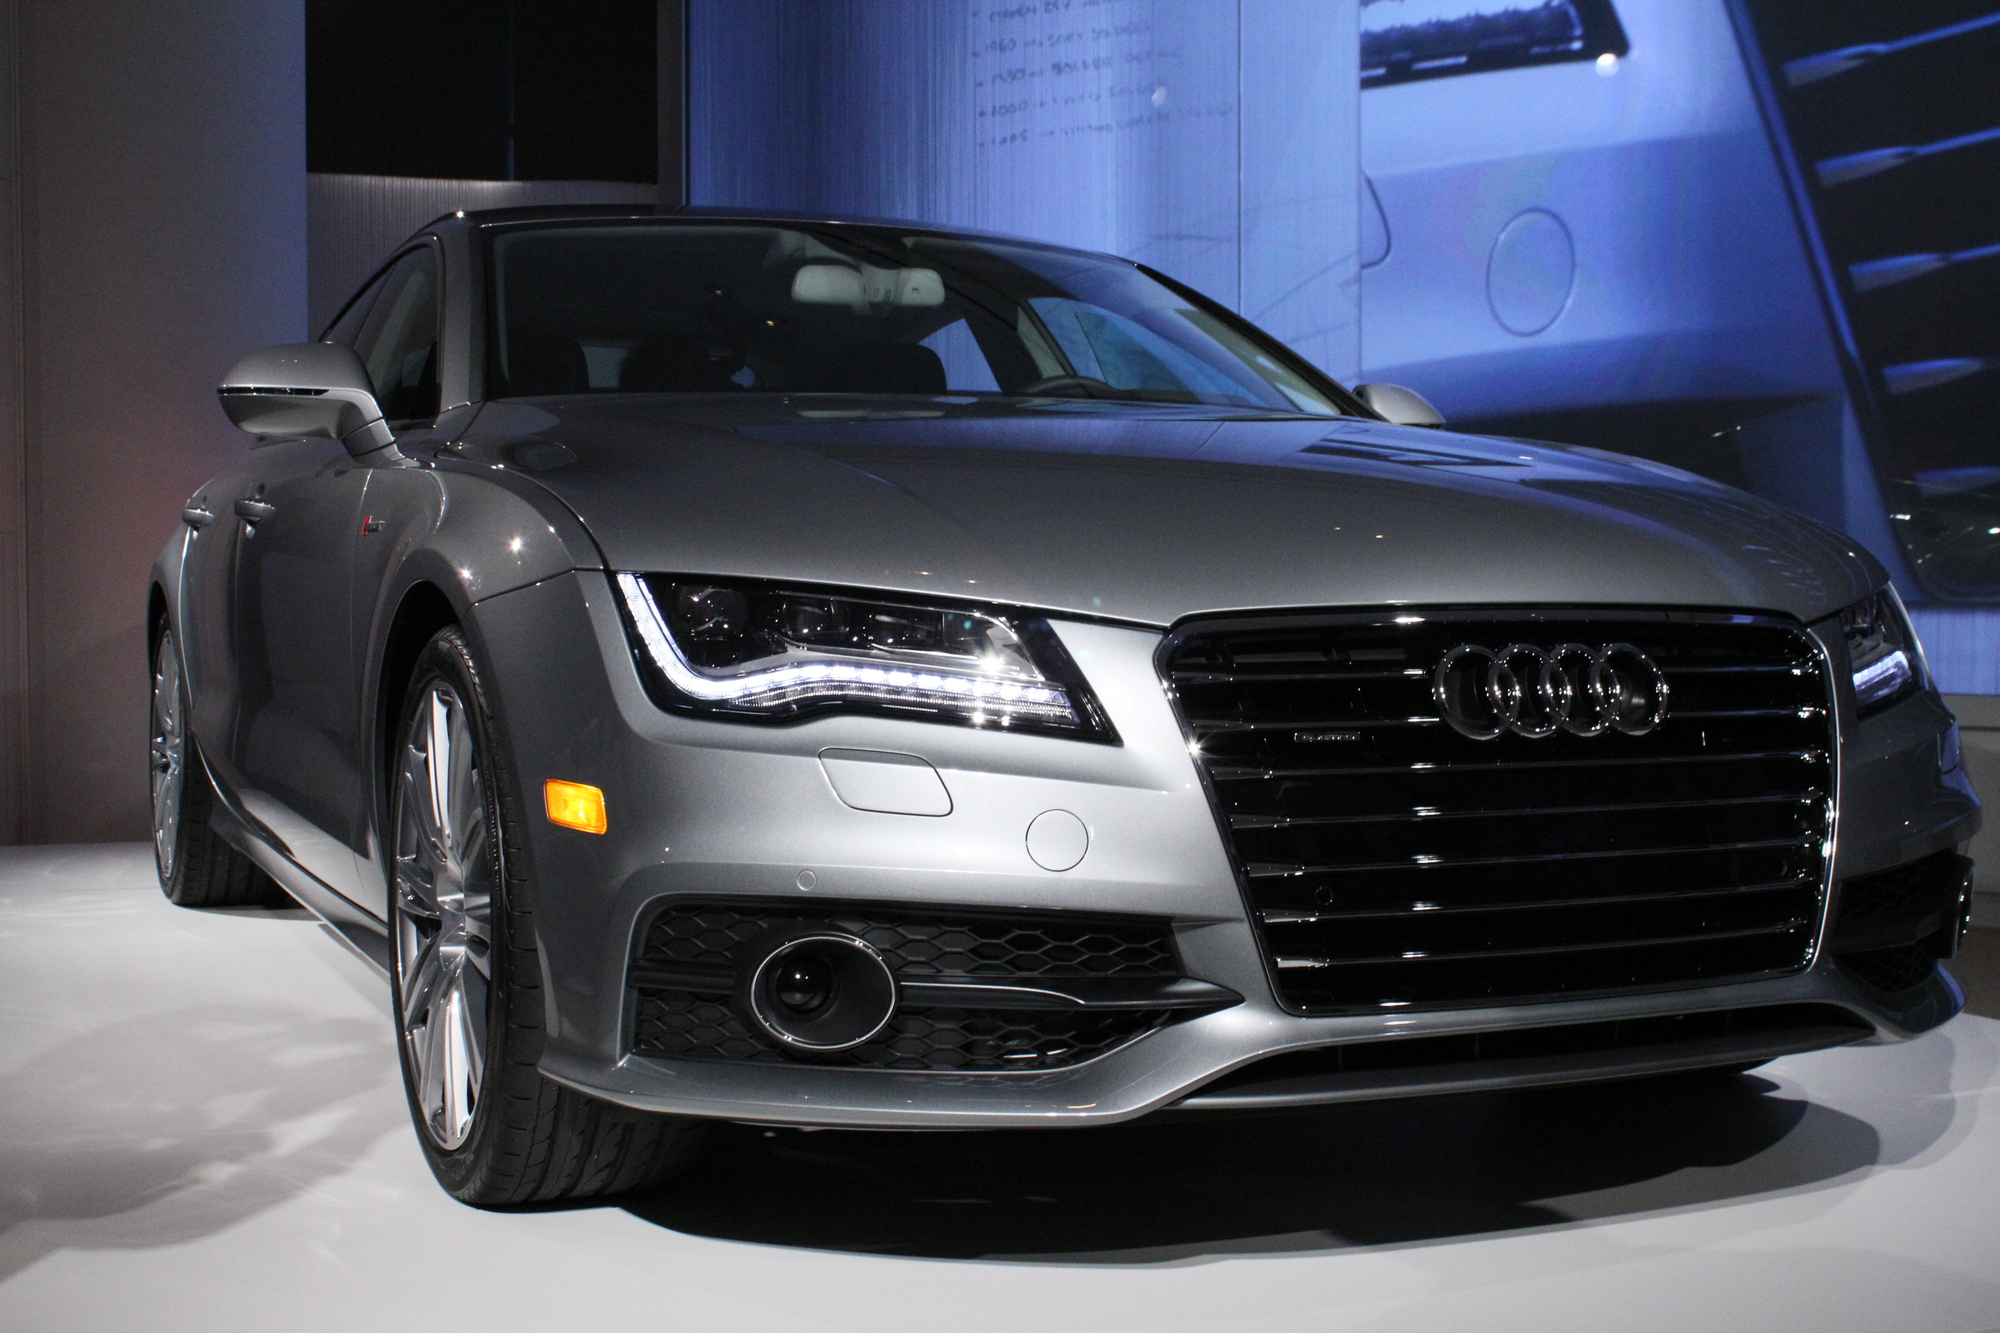 2012 audi a7 available in may s7 to follow. Black Bedroom Furniture Sets. Home Design Ideas